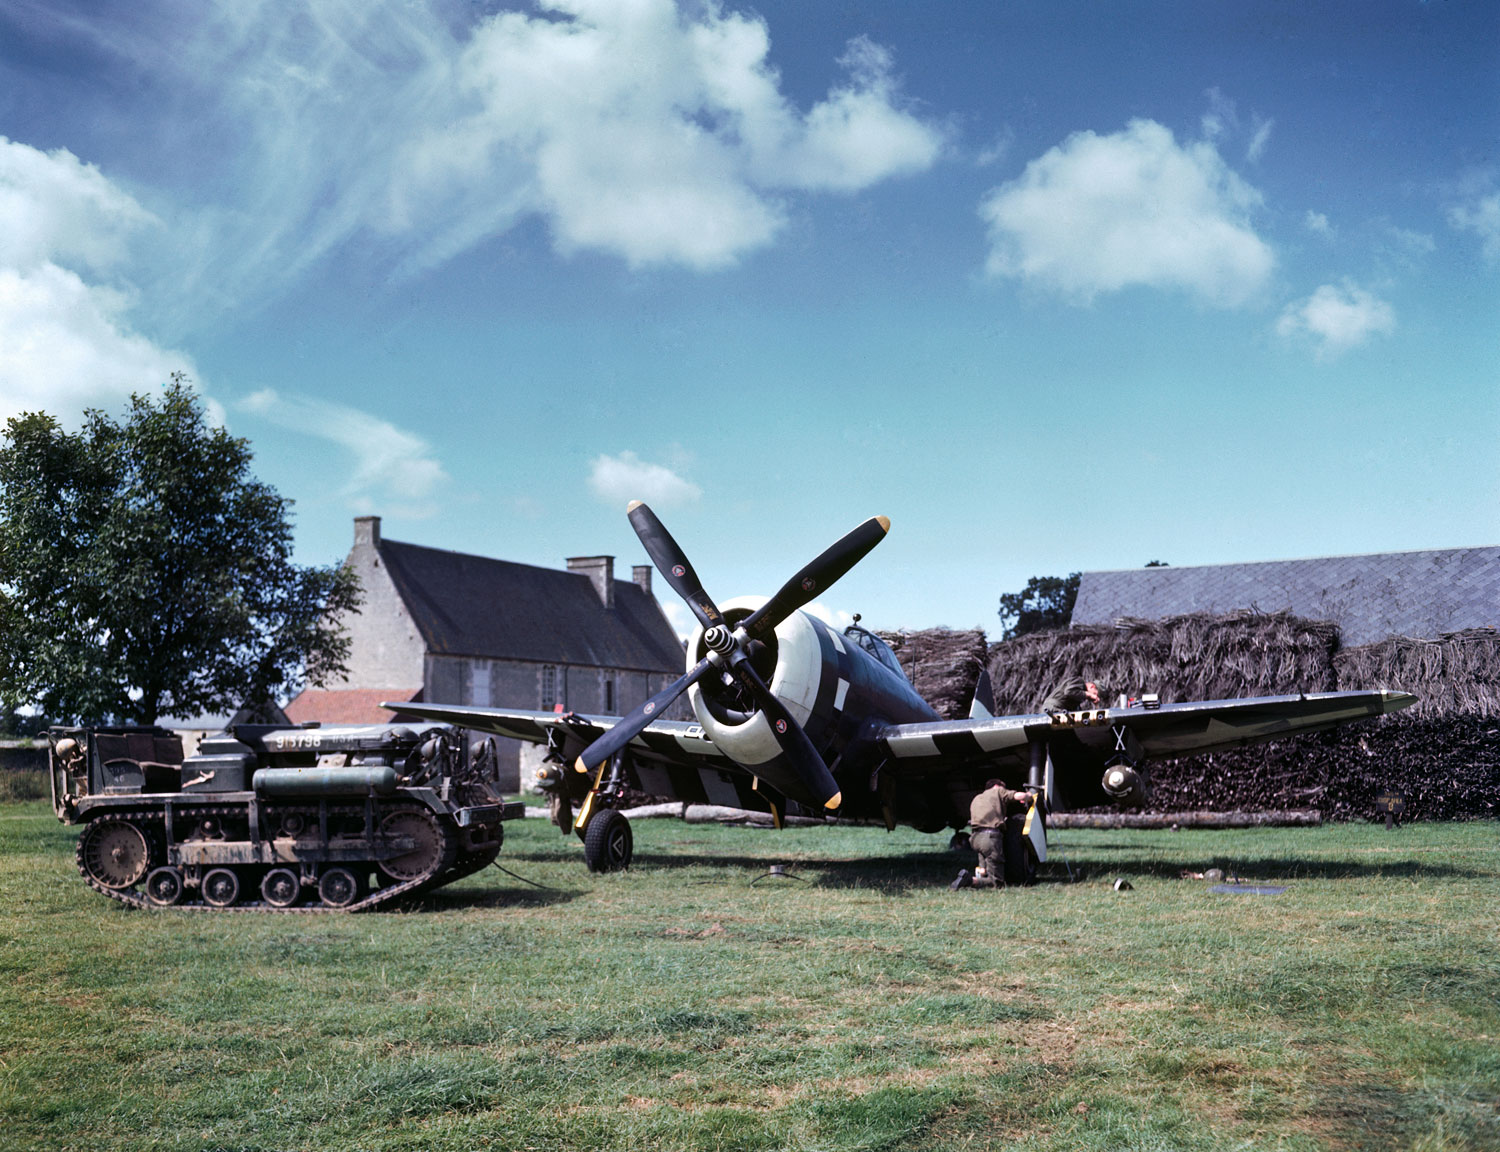 Maintenance work on an American P-47 Thunderbolt in a makeshift airfield in the French countryside, summer 1944.